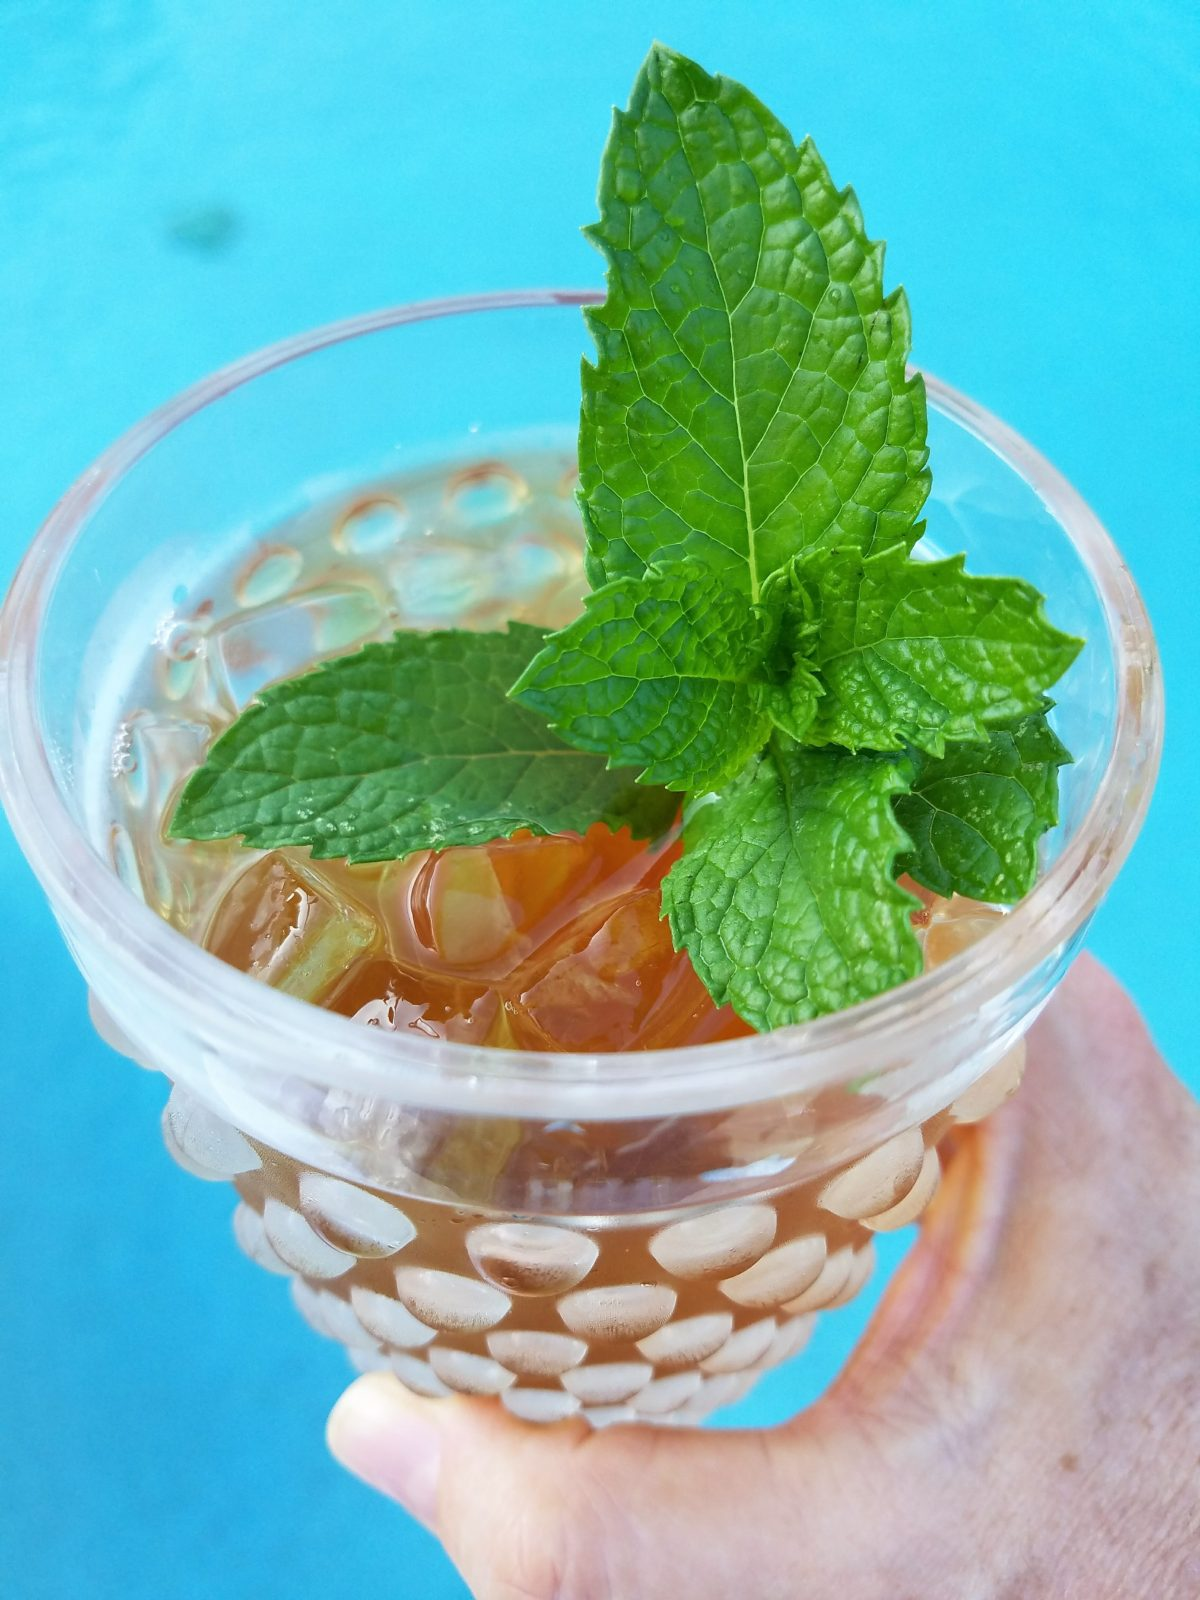 Give me a Tea:  Refreshing flavors for Summer!